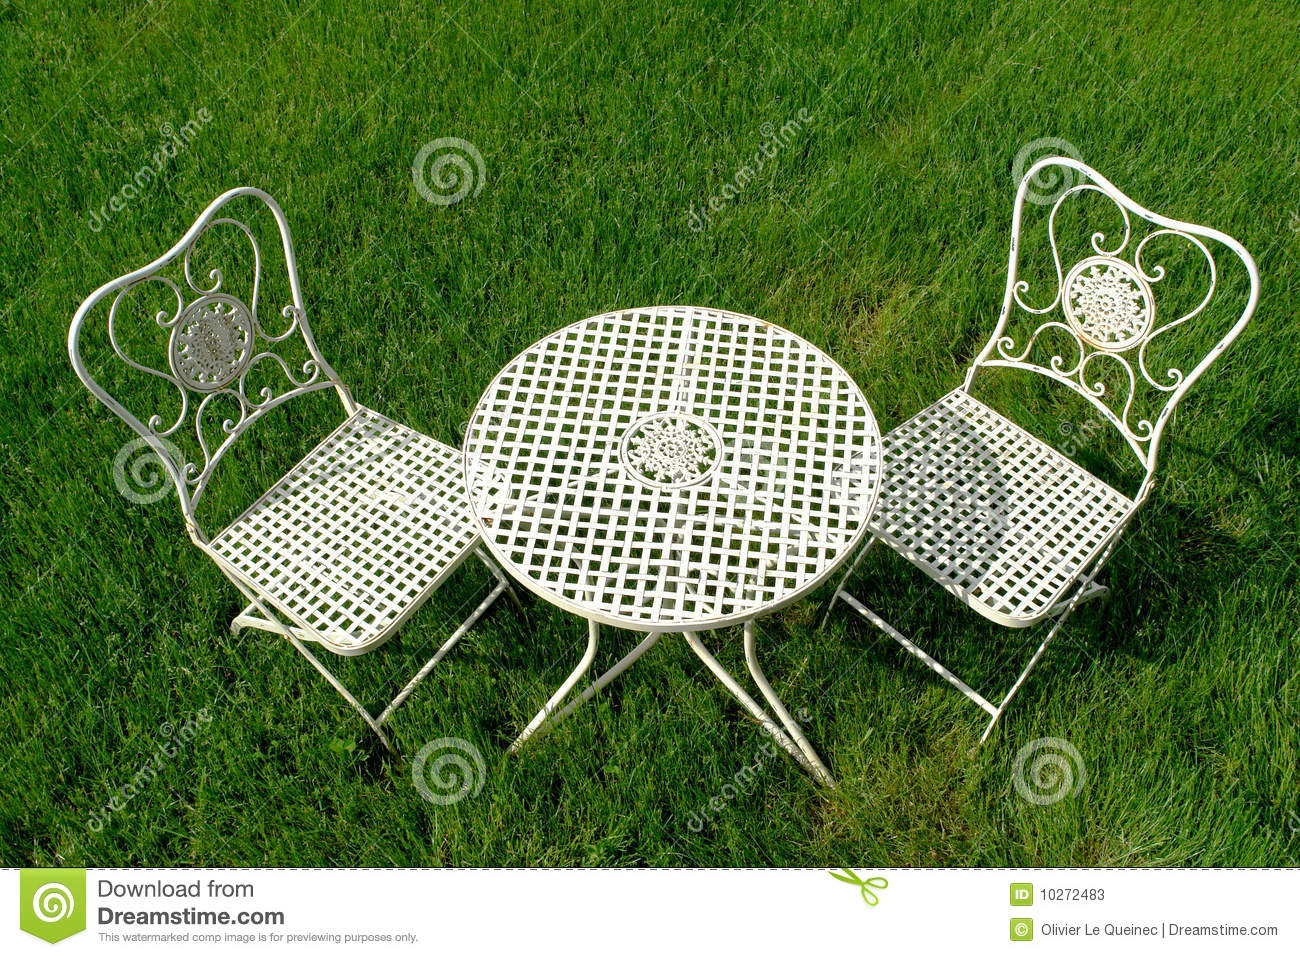 Enjoyable Cast Iron Patio Furniture Set On Green Grass Stock Image Best Image Libraries Weasiibadanjobscom